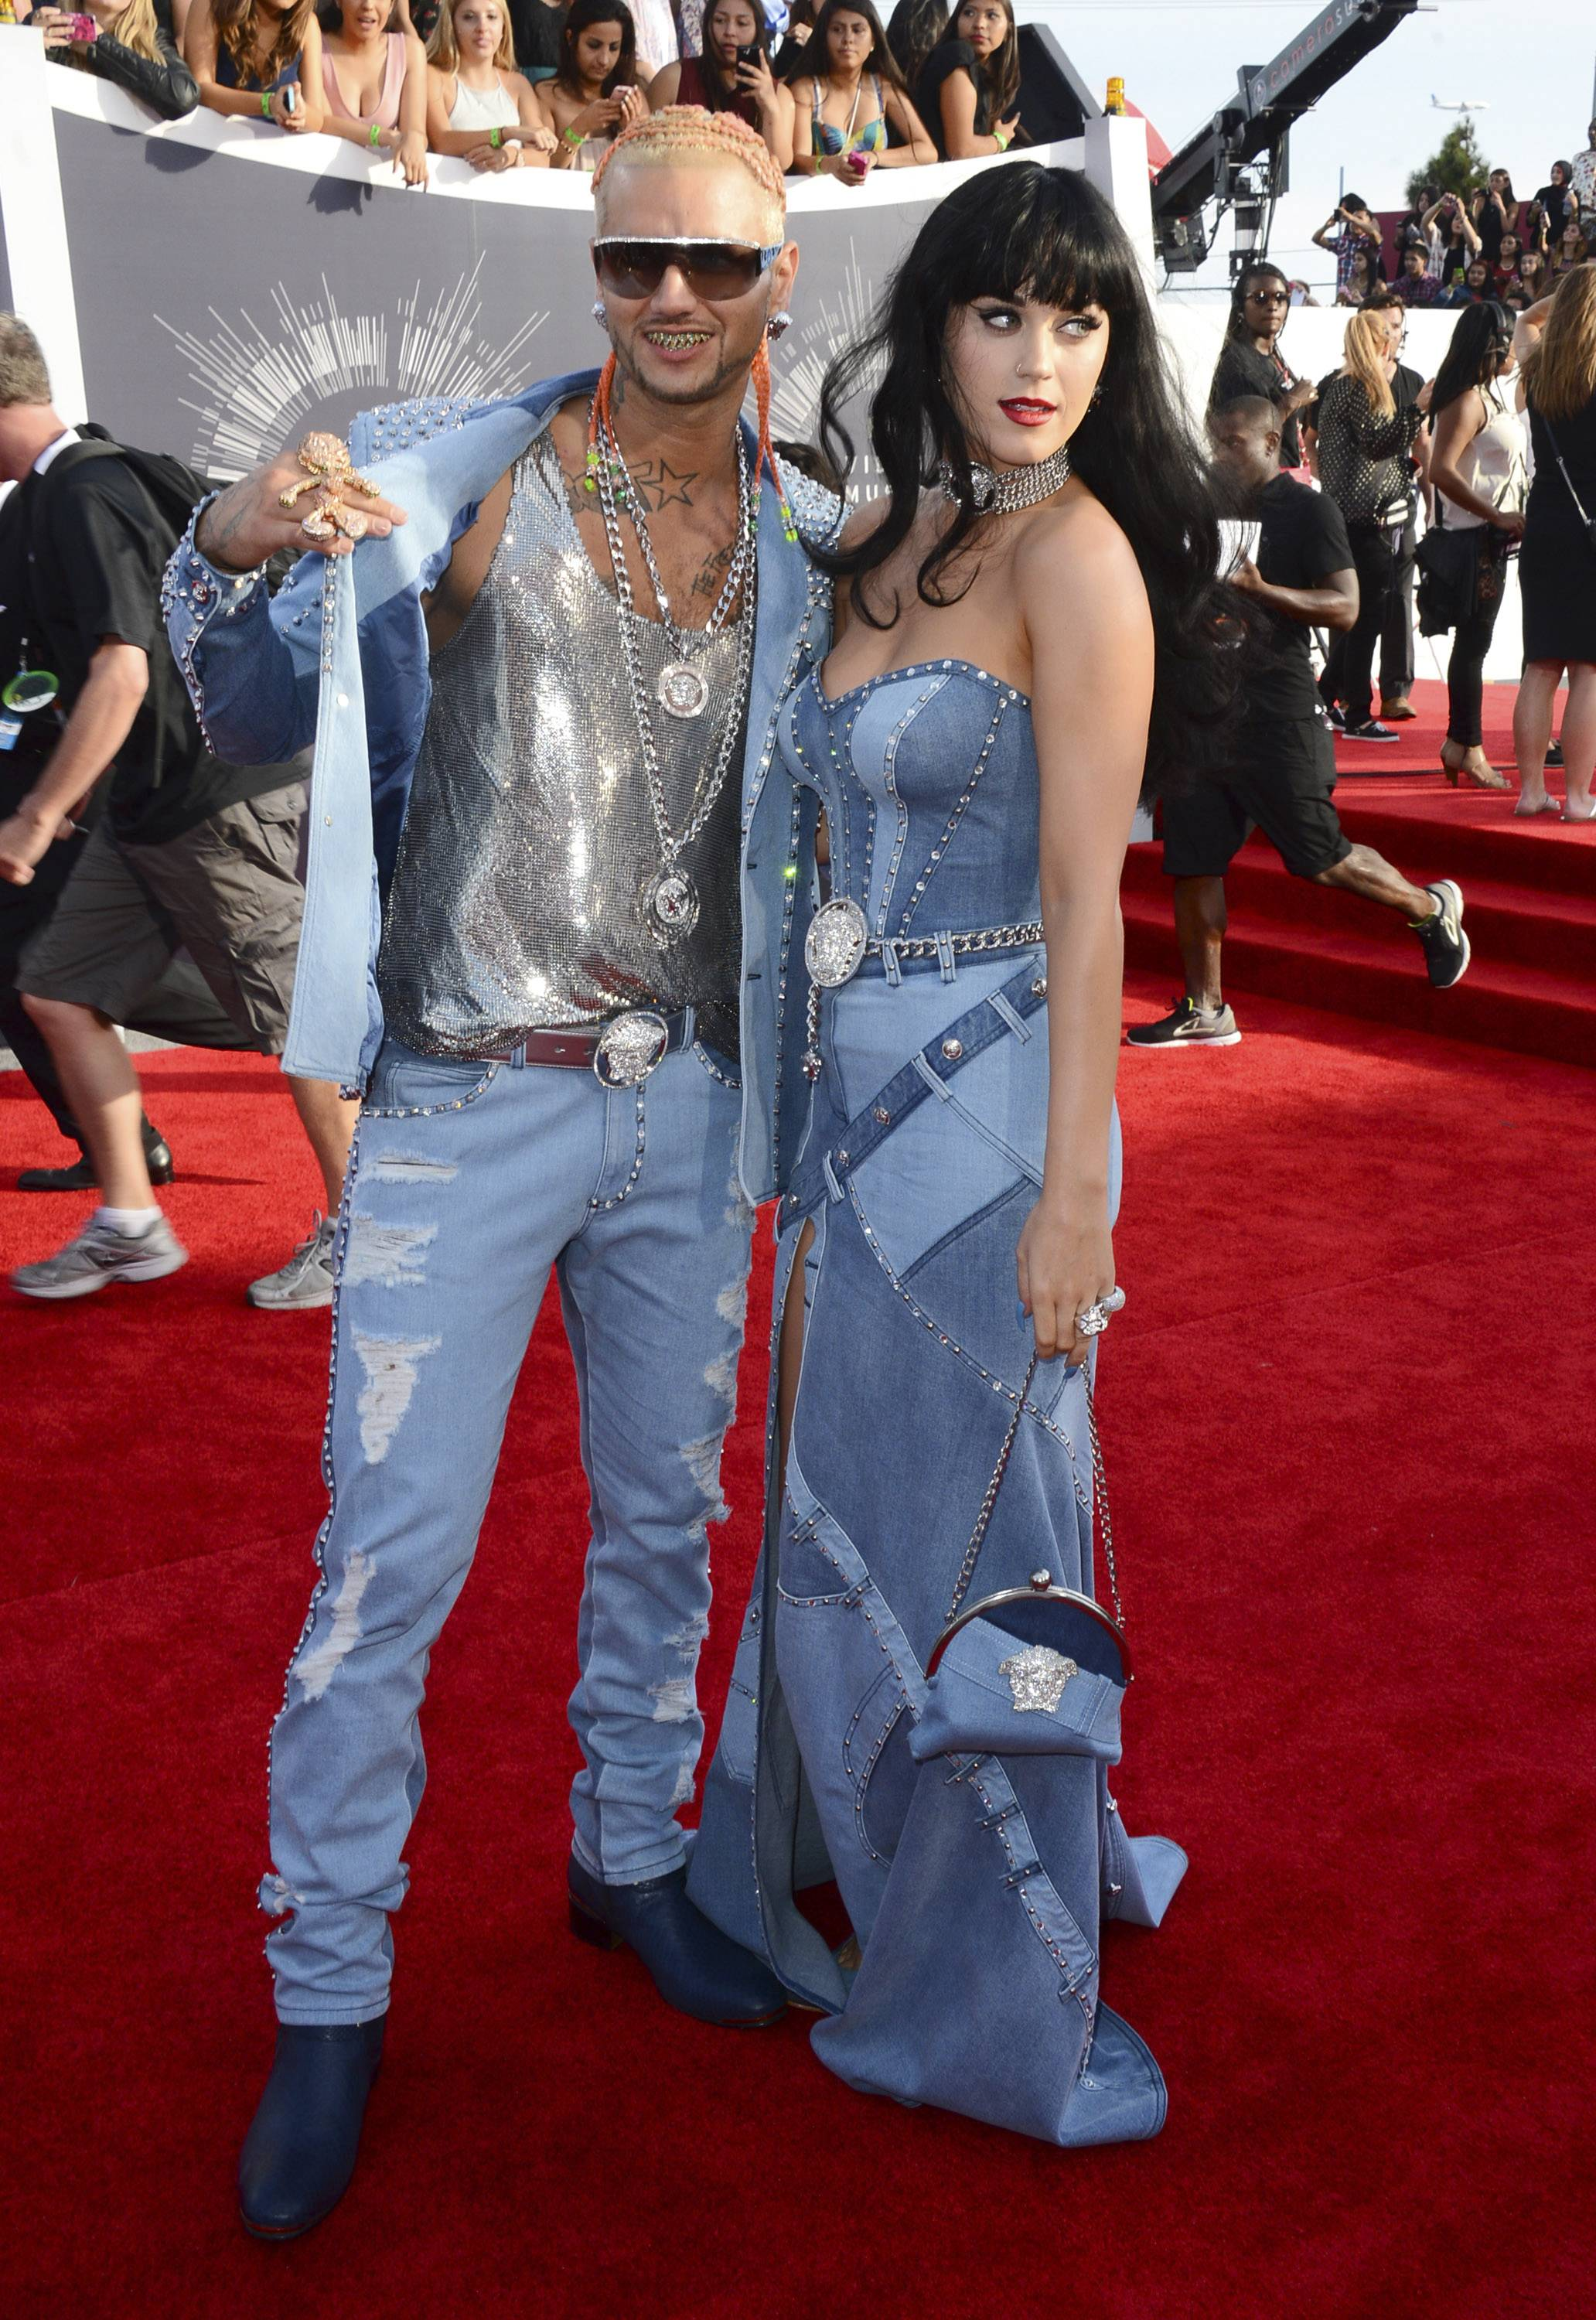 WORST: The eyes - they burn! Just say no to the denim nostalgia of Riff Raff and Katy Perry.